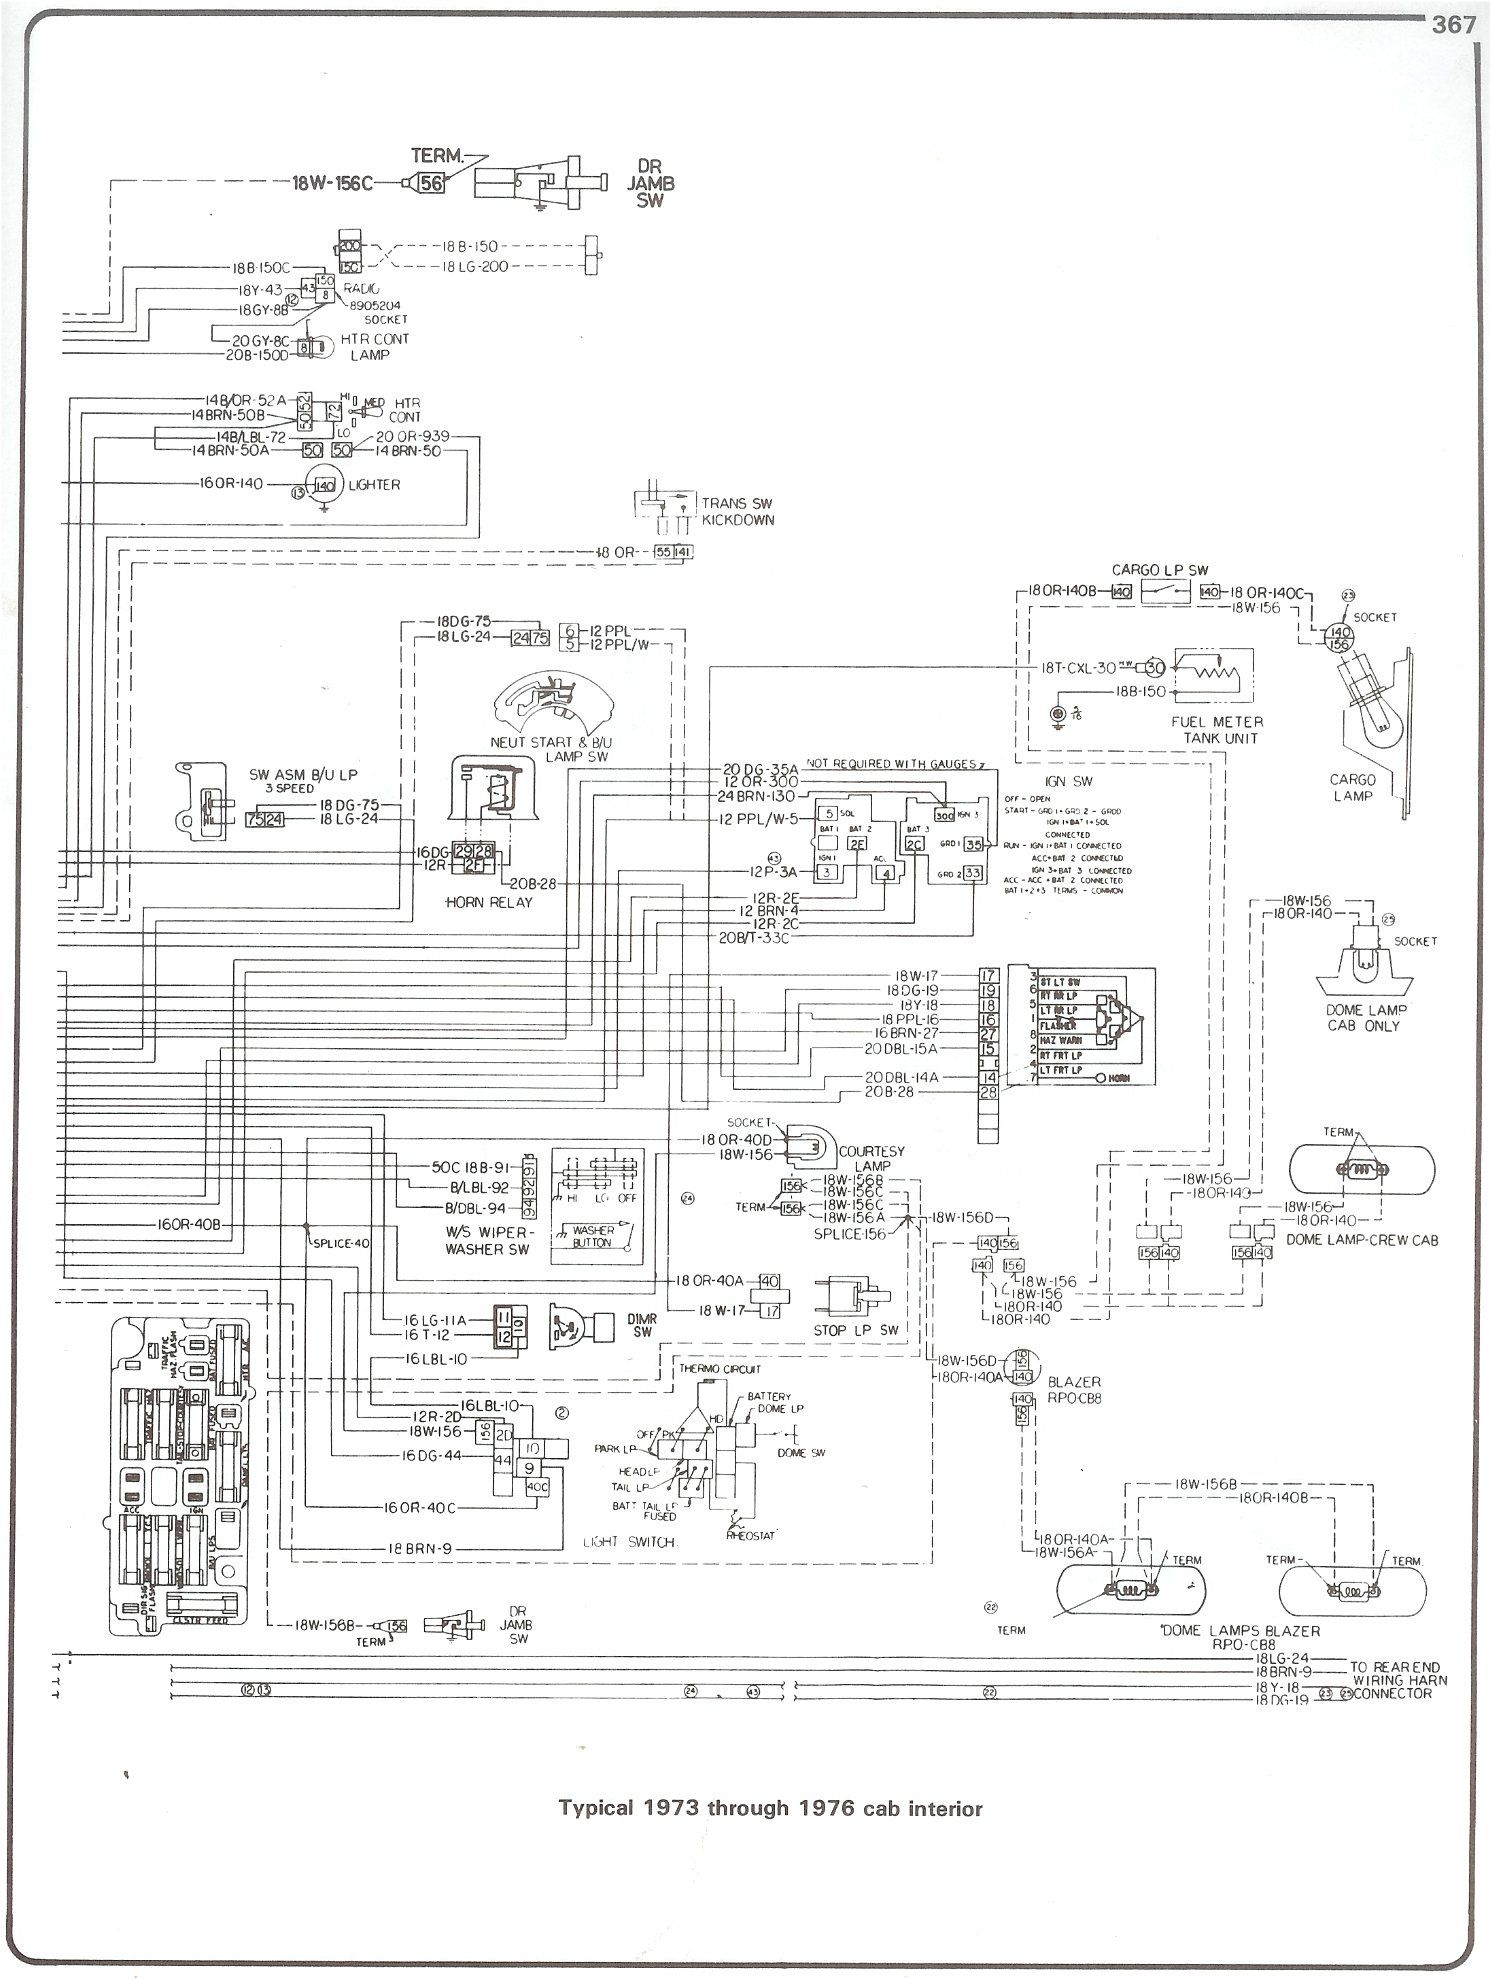 Pin By Brian Green On Diagrams Chevy Trucks 1984 Chevy Truck 1985 Chevy Truck